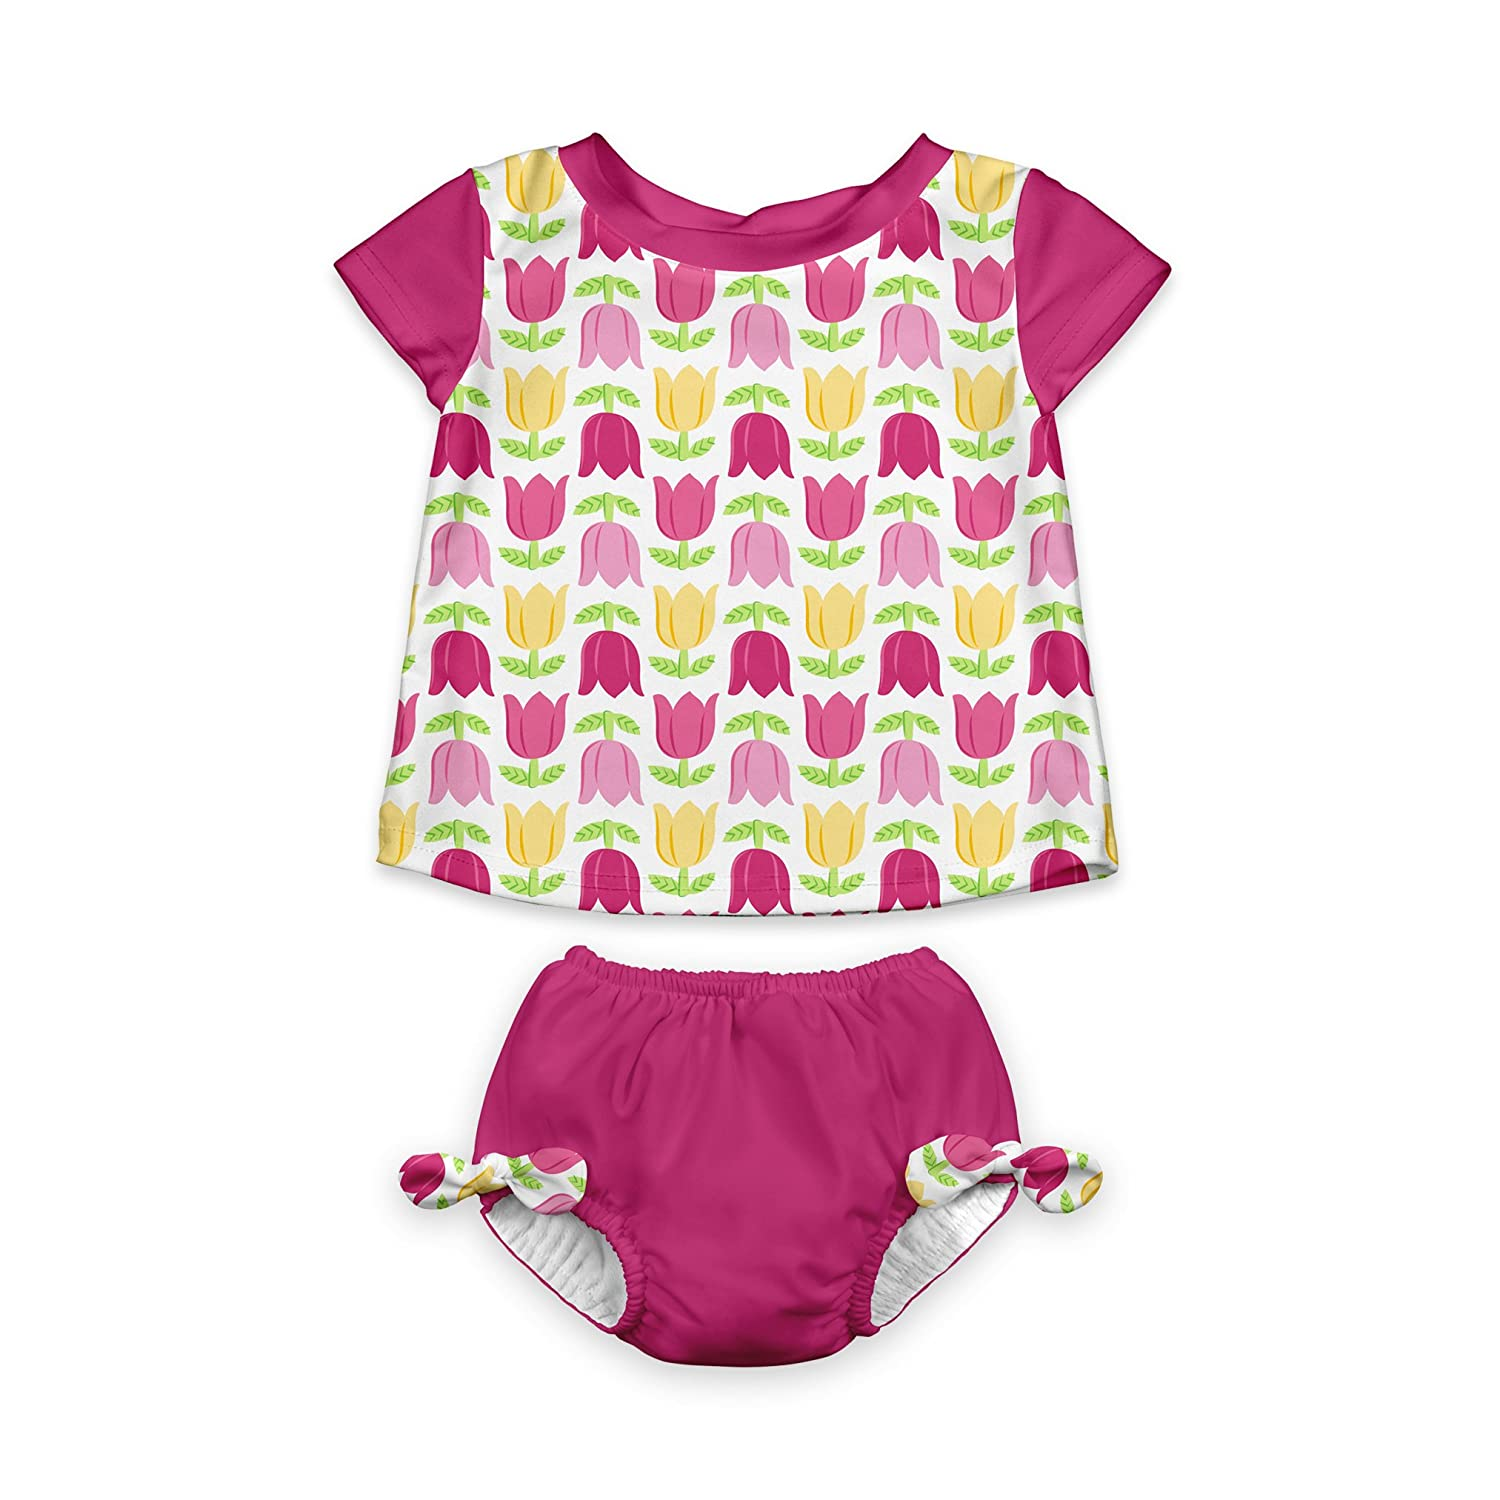 i play. Baby Girls' 2pc Cap Sleeve Rashguard Set With Absorbent Swim Diaper, White Tulip, 24mo i play Children's Apparel 713177-012-45